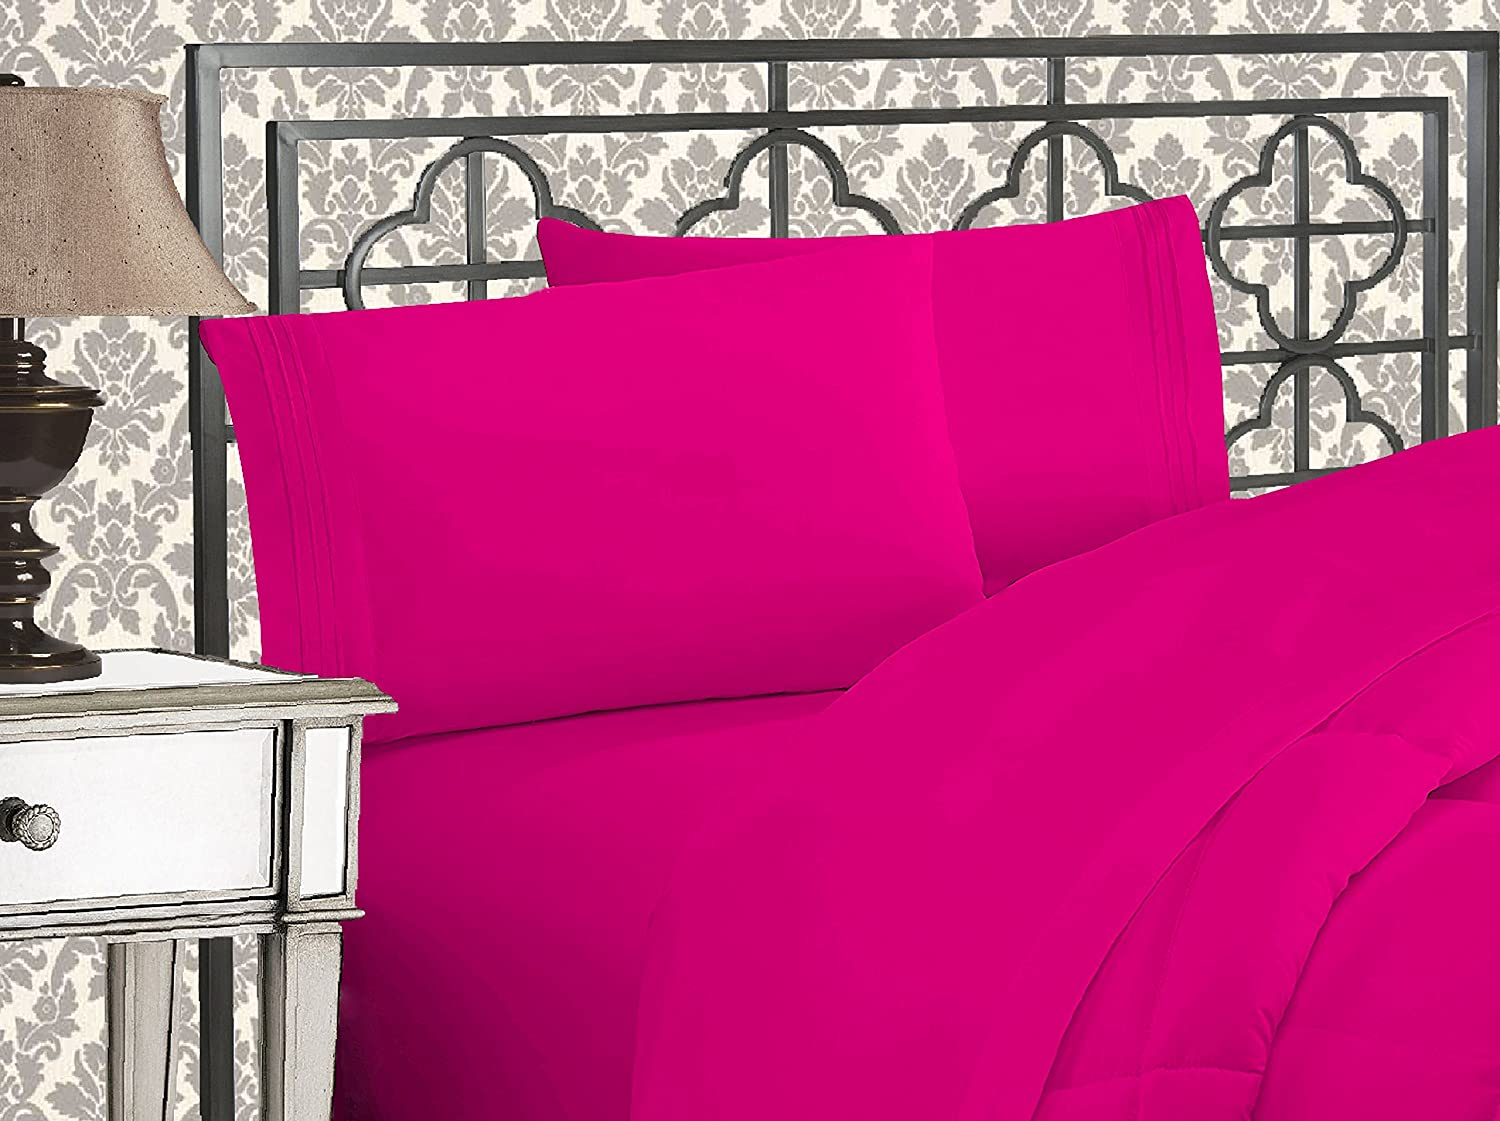 Elegant Comfort Luxurious 1500 Thread Count Egyptian Quality Three Line Embroidered Softest Premium Hotel Quality 4-Piece Bed Sheet Set, Wrinkle and Fade Resistant, Queen, Hot Pink